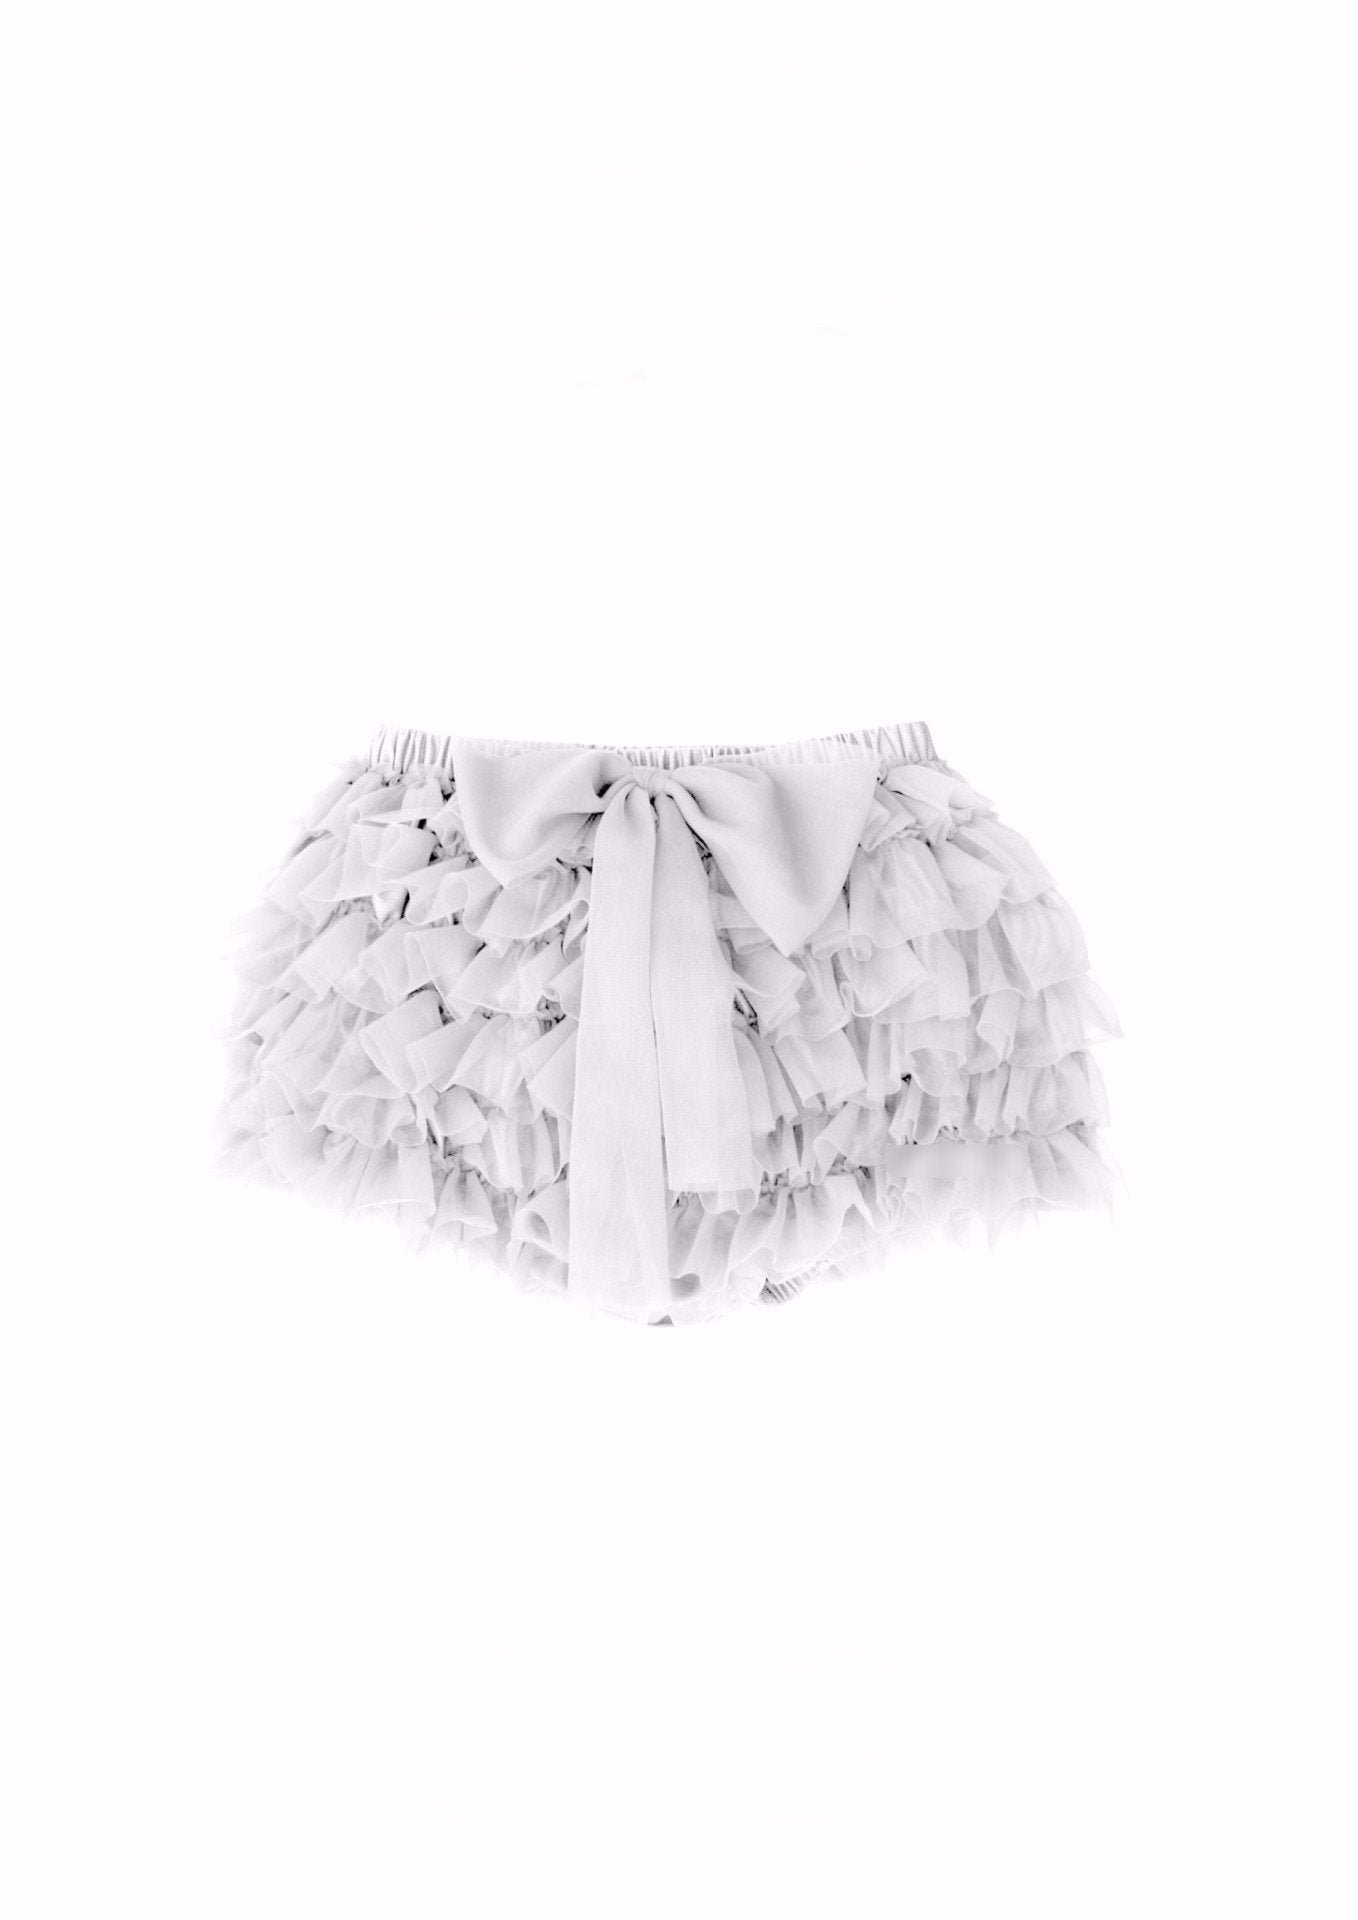 DOLLY by Le Petit Tom ® FRILLY PANTS off-white - DOLLY by Le Petit Tom ®